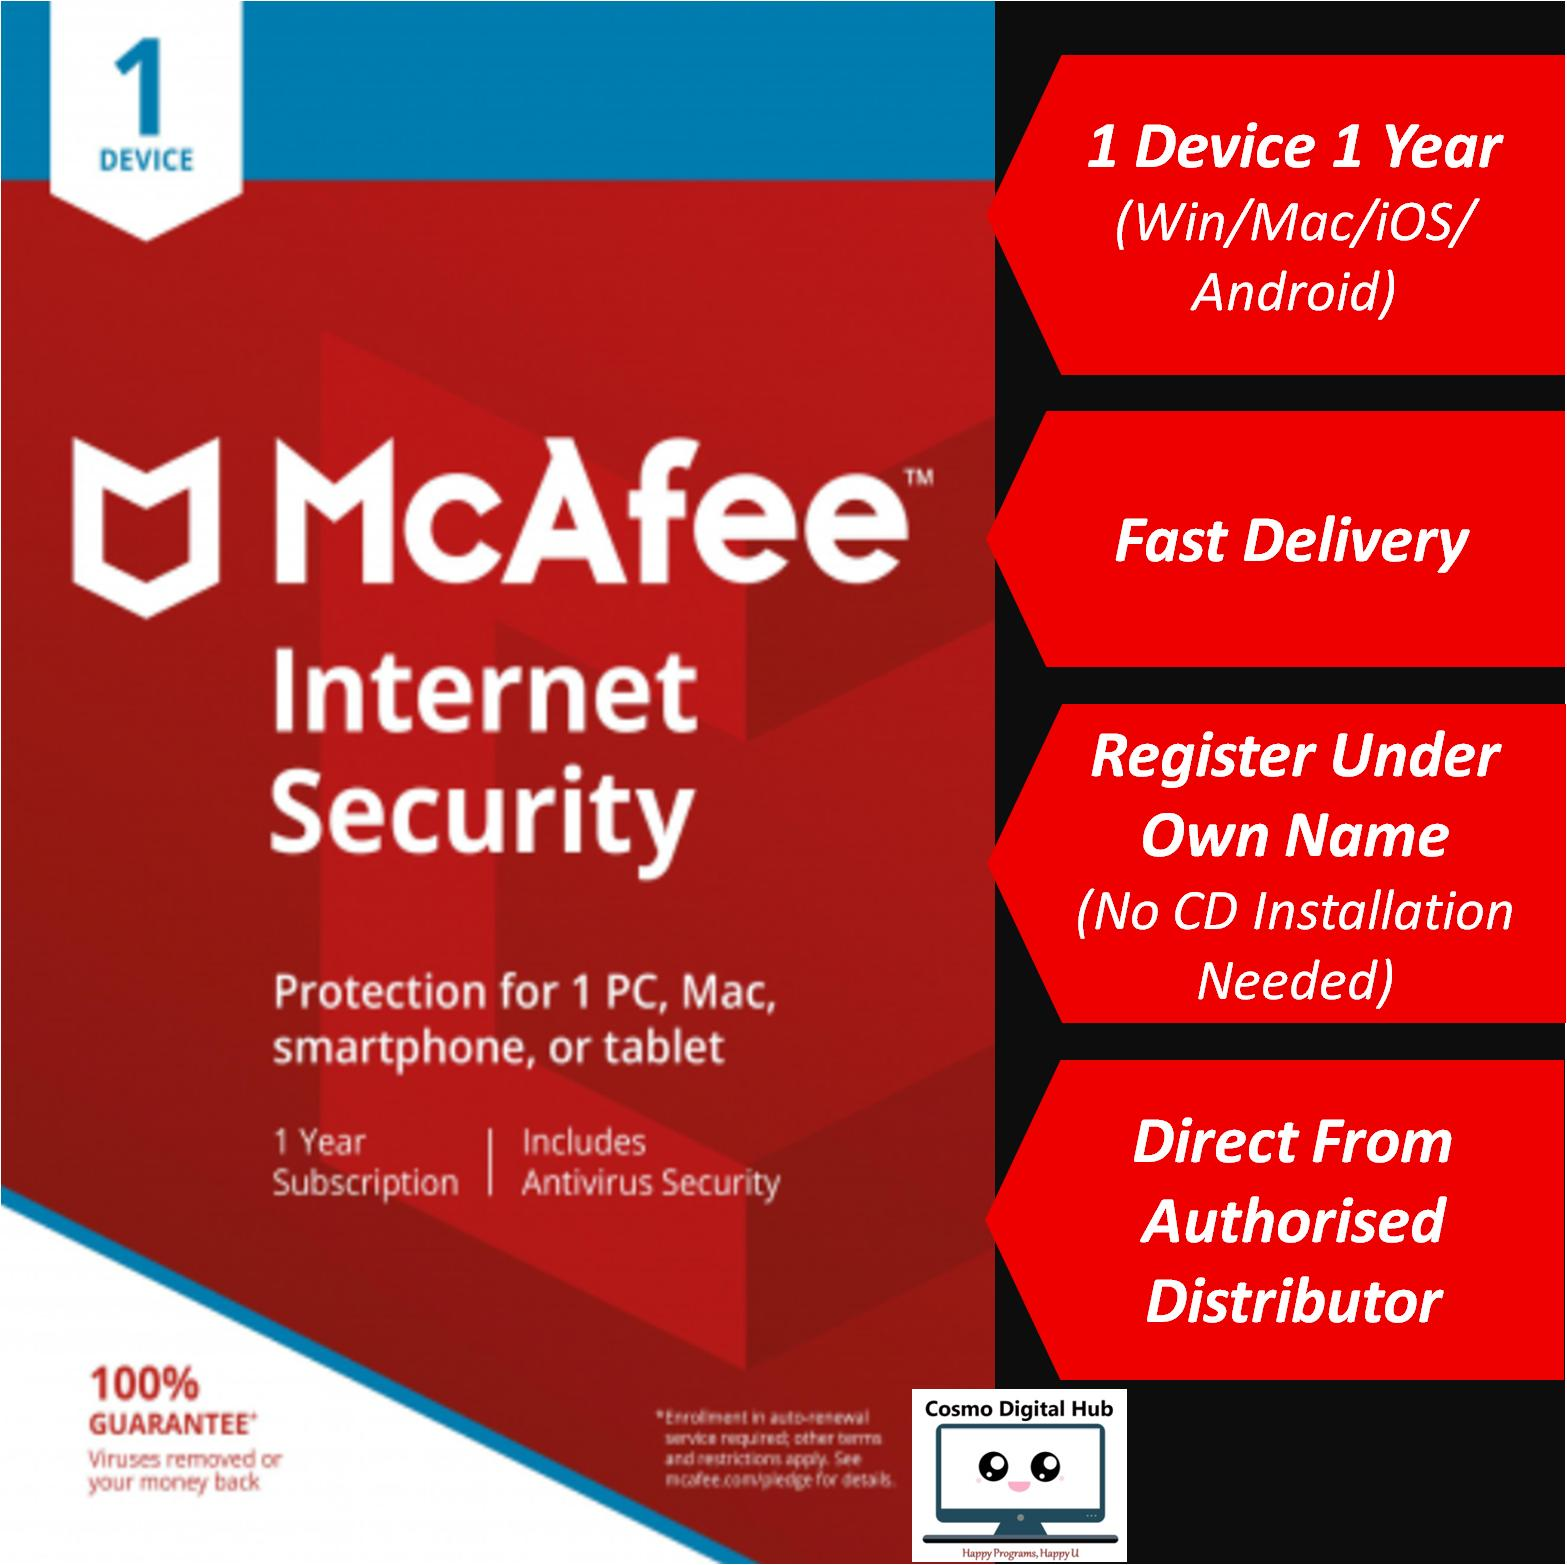 McAfee Internet Security 2019 - 1 Device 1 Year Antivirus Protection, Safe  Web Browsing, Spam Filter, Password Manager, Document Shredder For